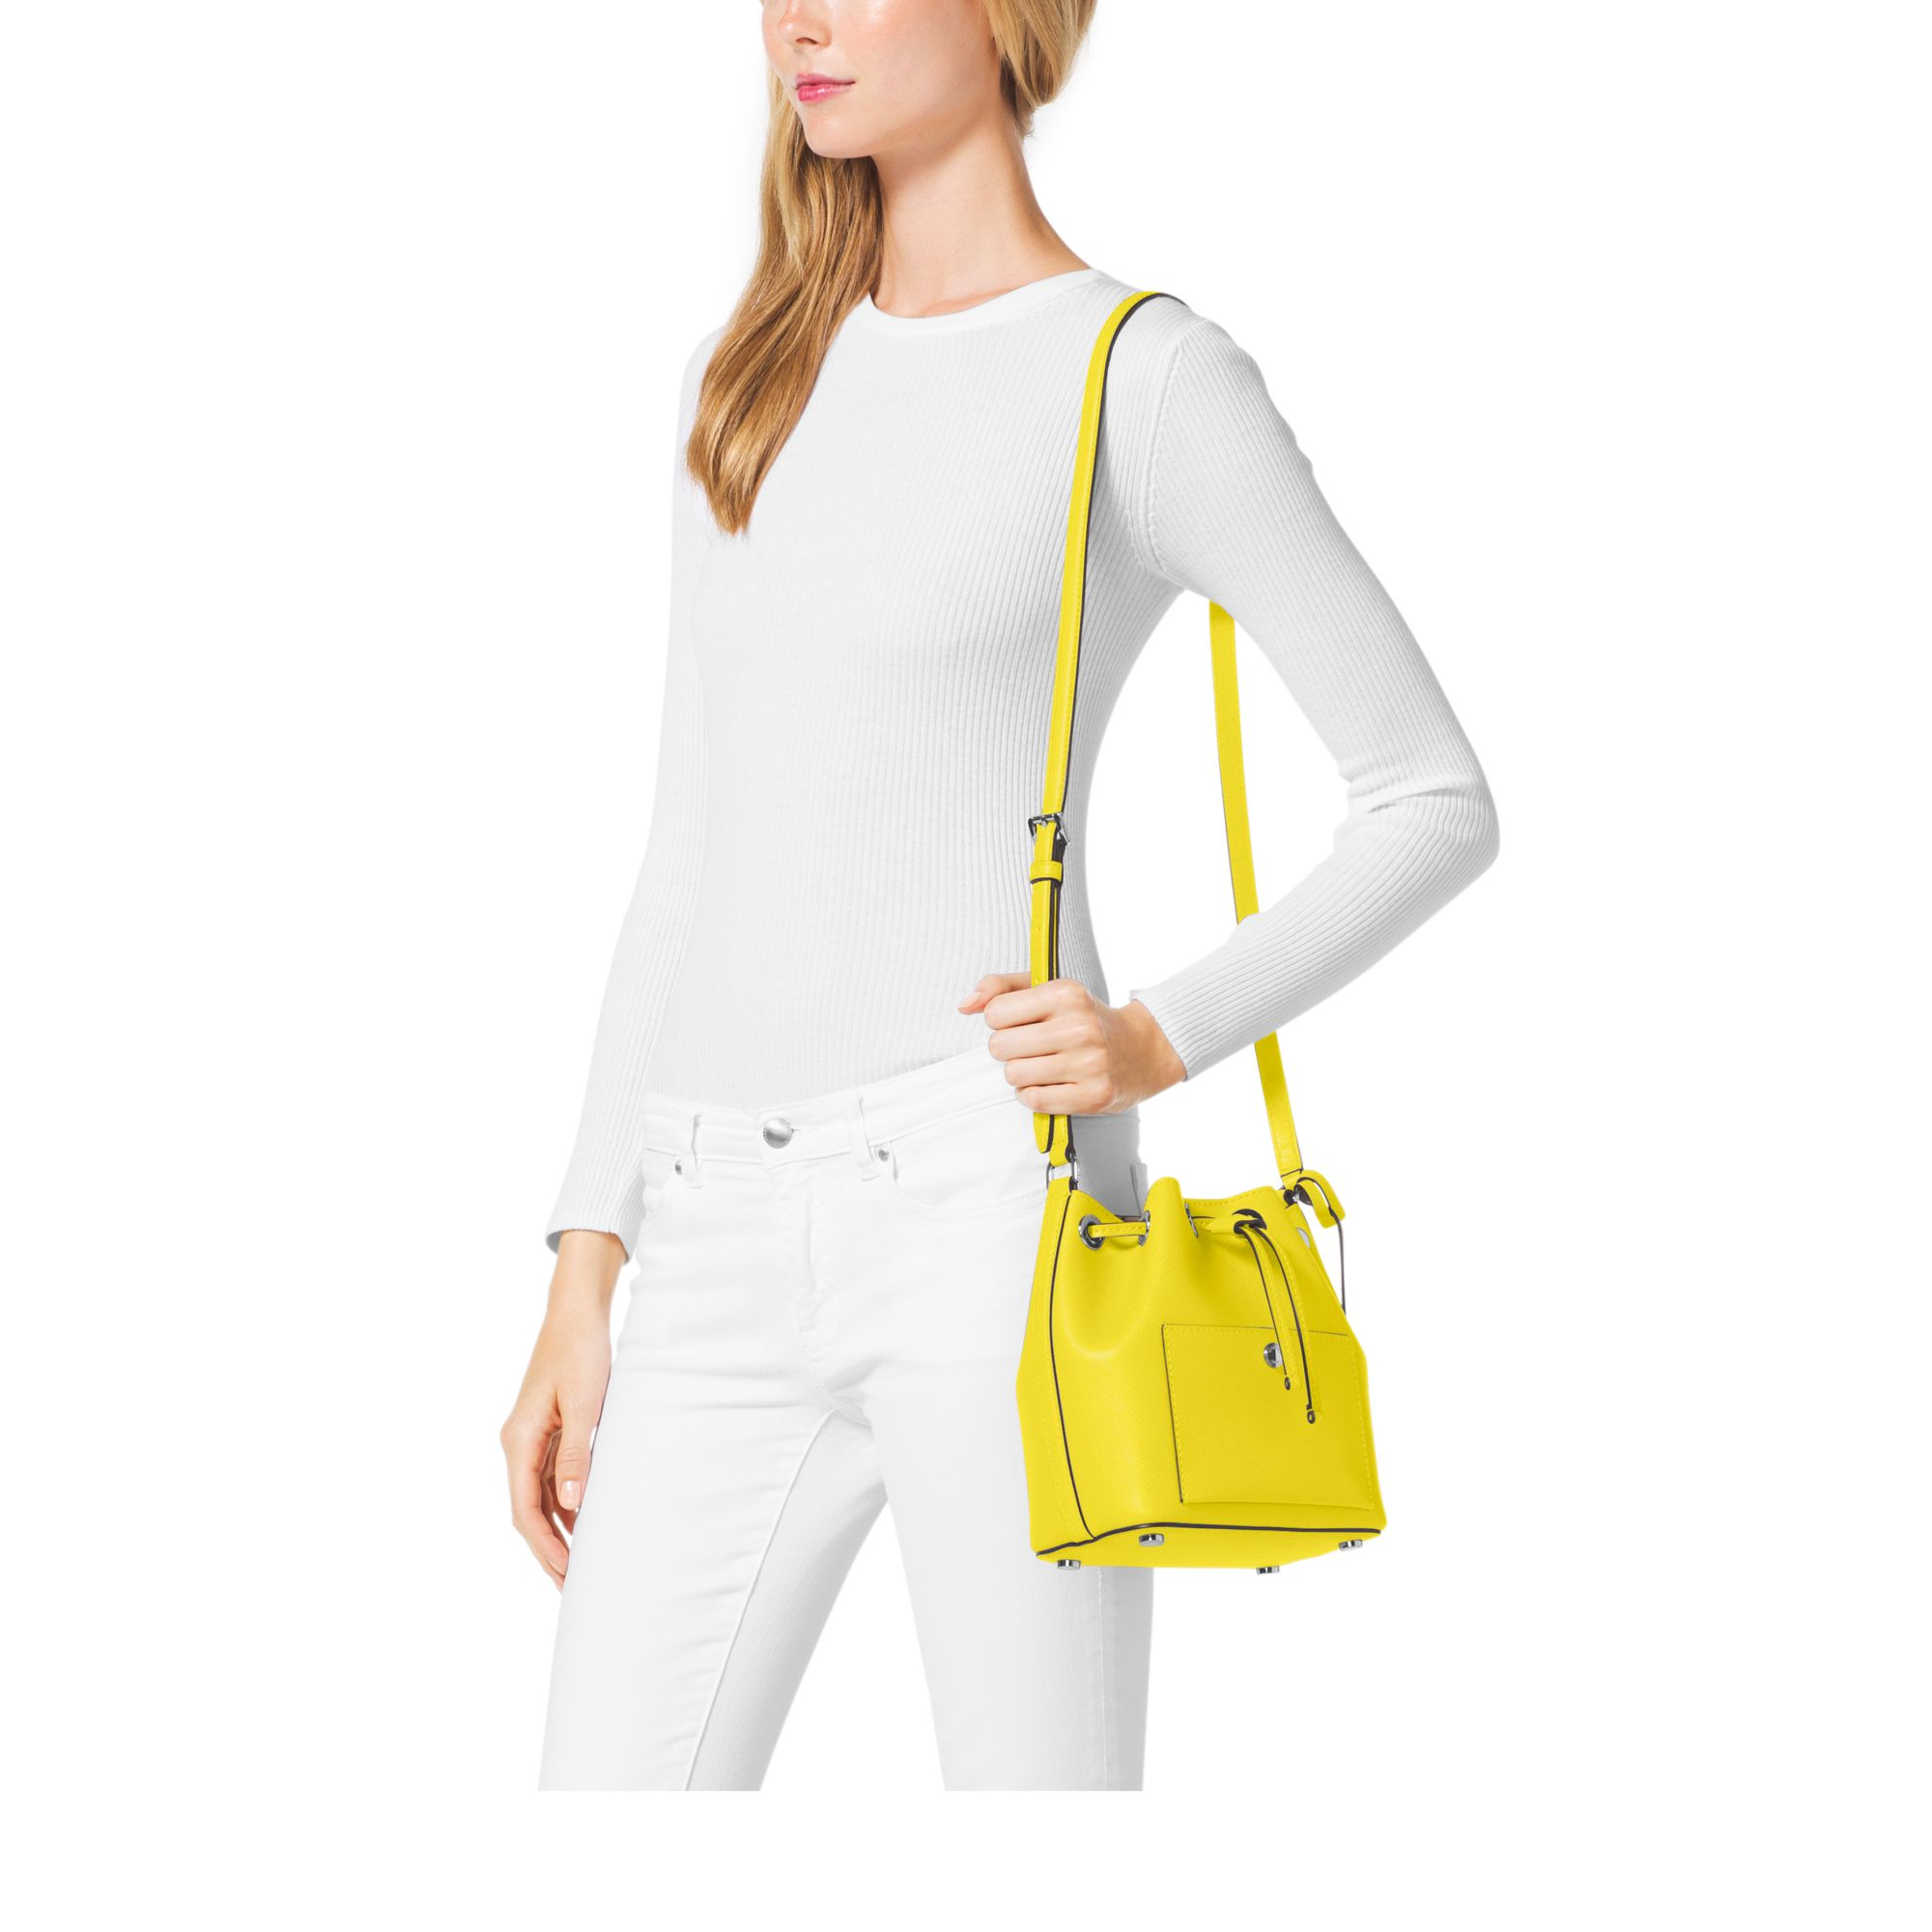 80946d08949e Lyst - Michael Kors Greenwich Small Saffiano Leather Bucket Bag in ...